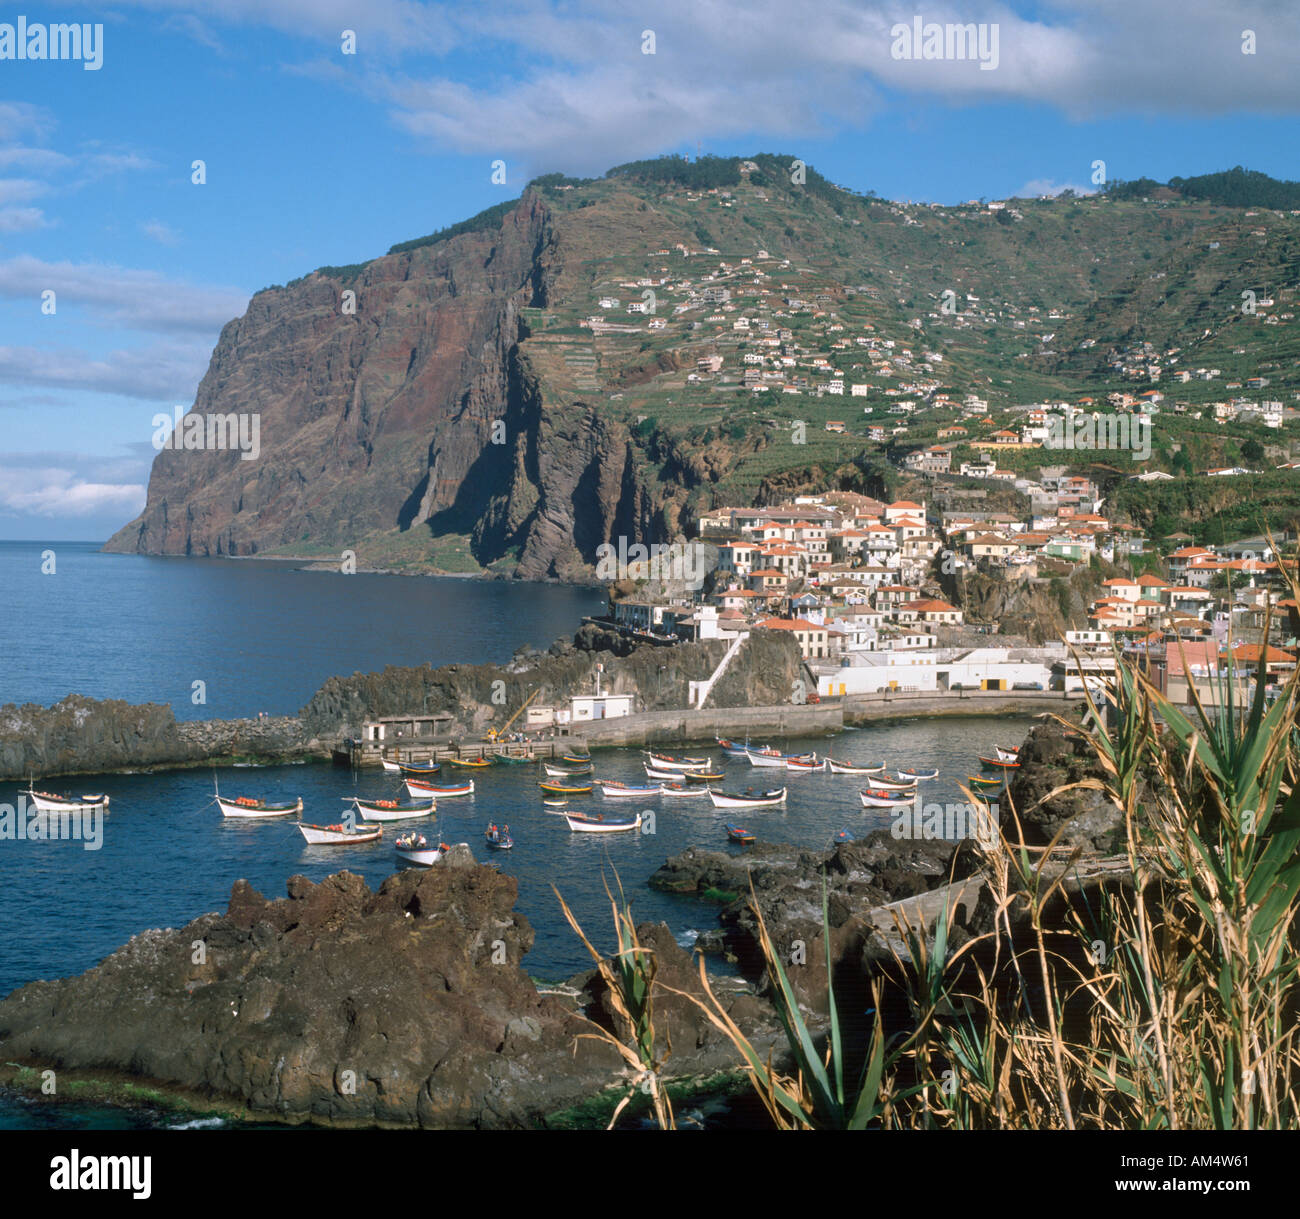 The south coast fishing village of Camara de Lobos (where Winston Churchill used to paint),  Madeira, Portugal - Stock Image